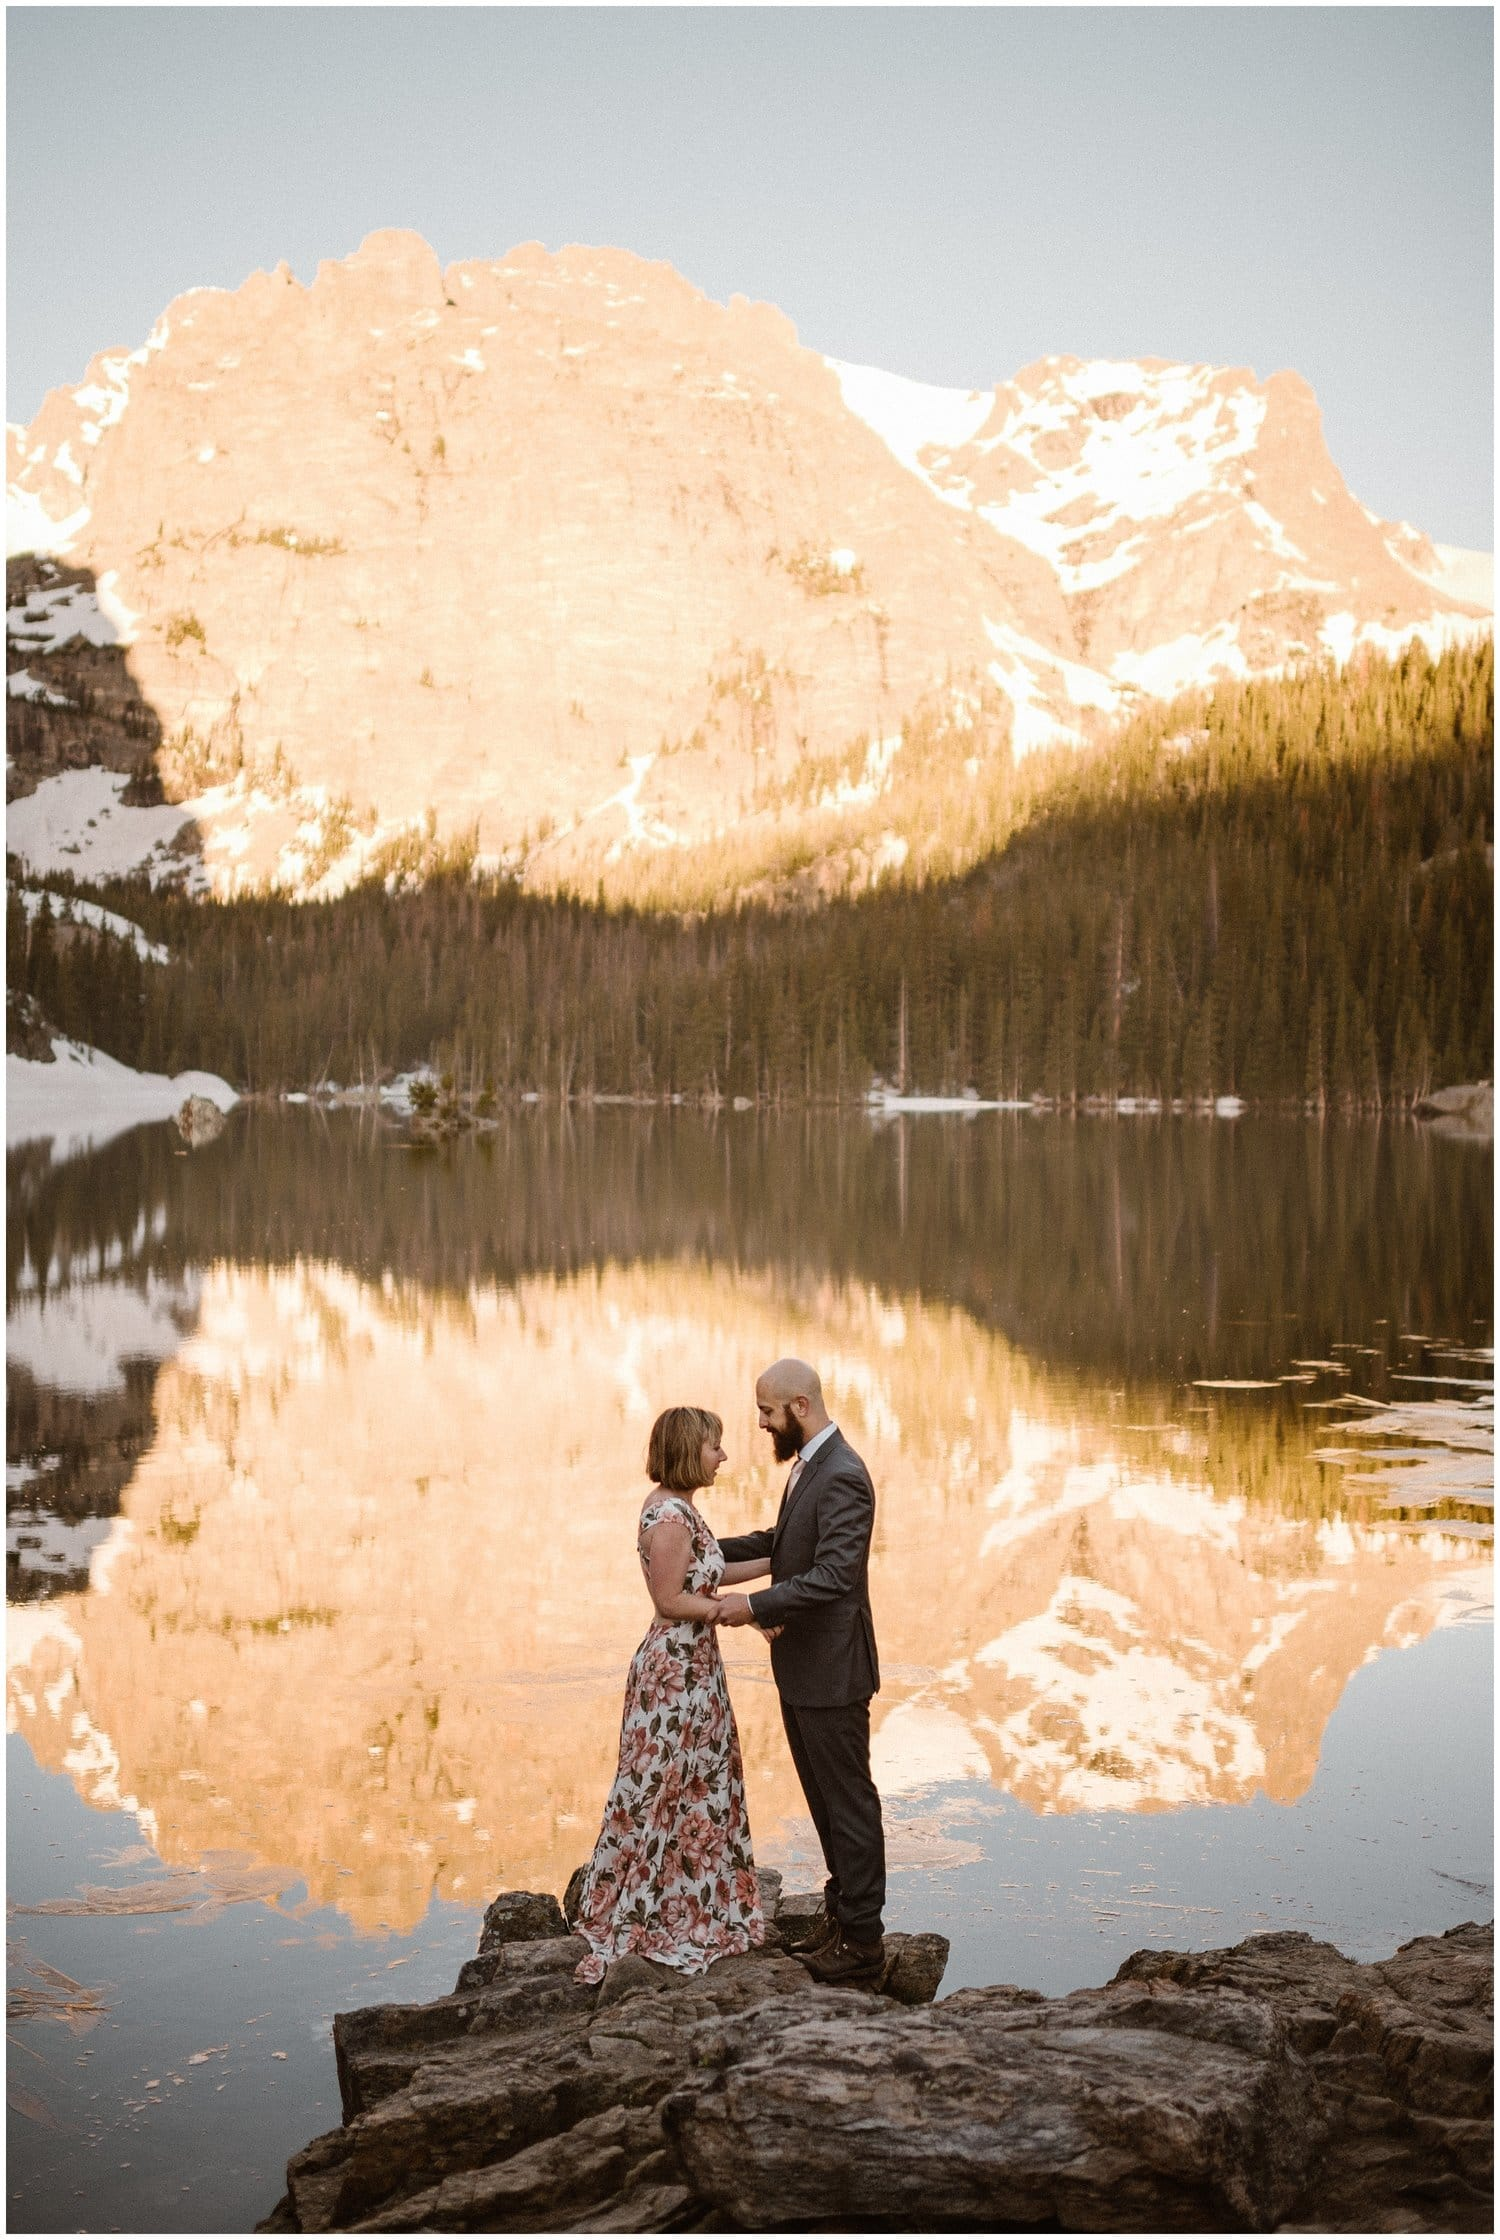 Bride and groom embrace in the Colorado mountains on their wedding day.